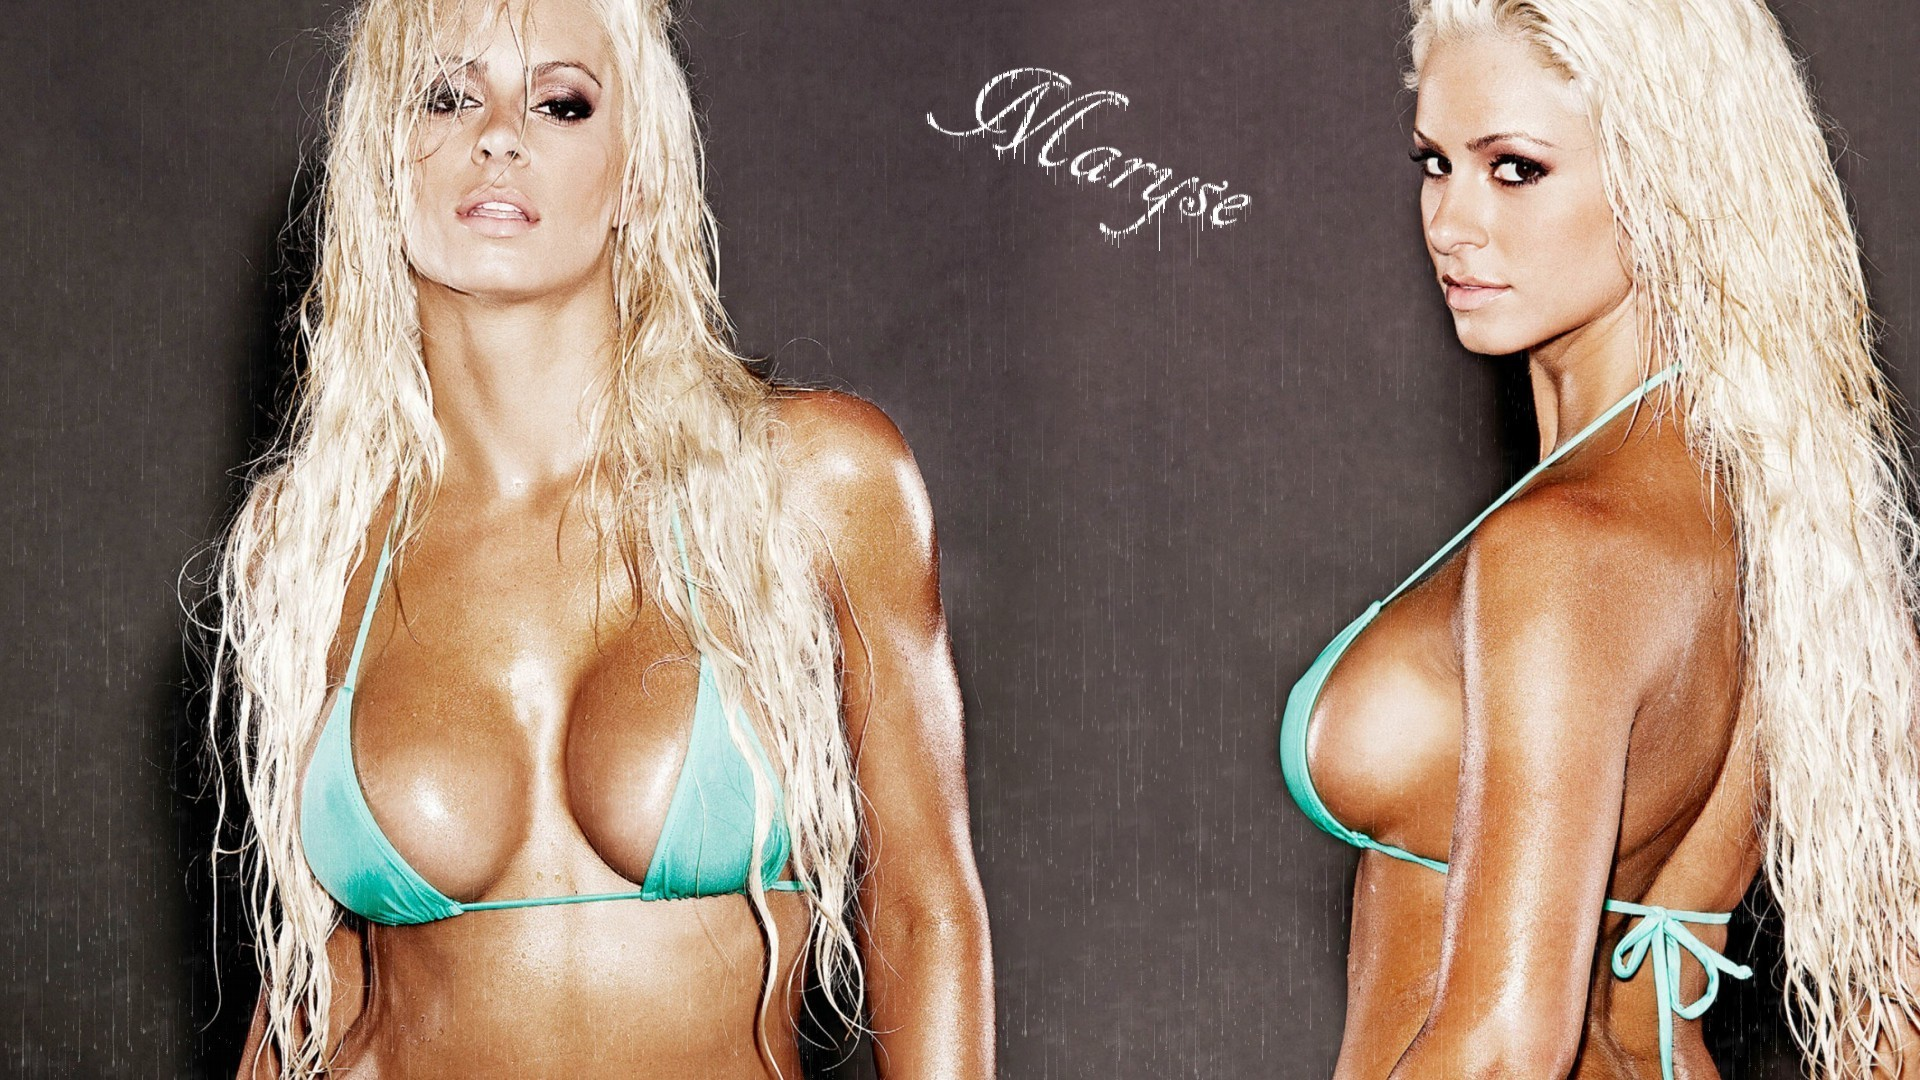 Micketo Images Wwe Divas Hd Wallpaper And Background Photos 24771052